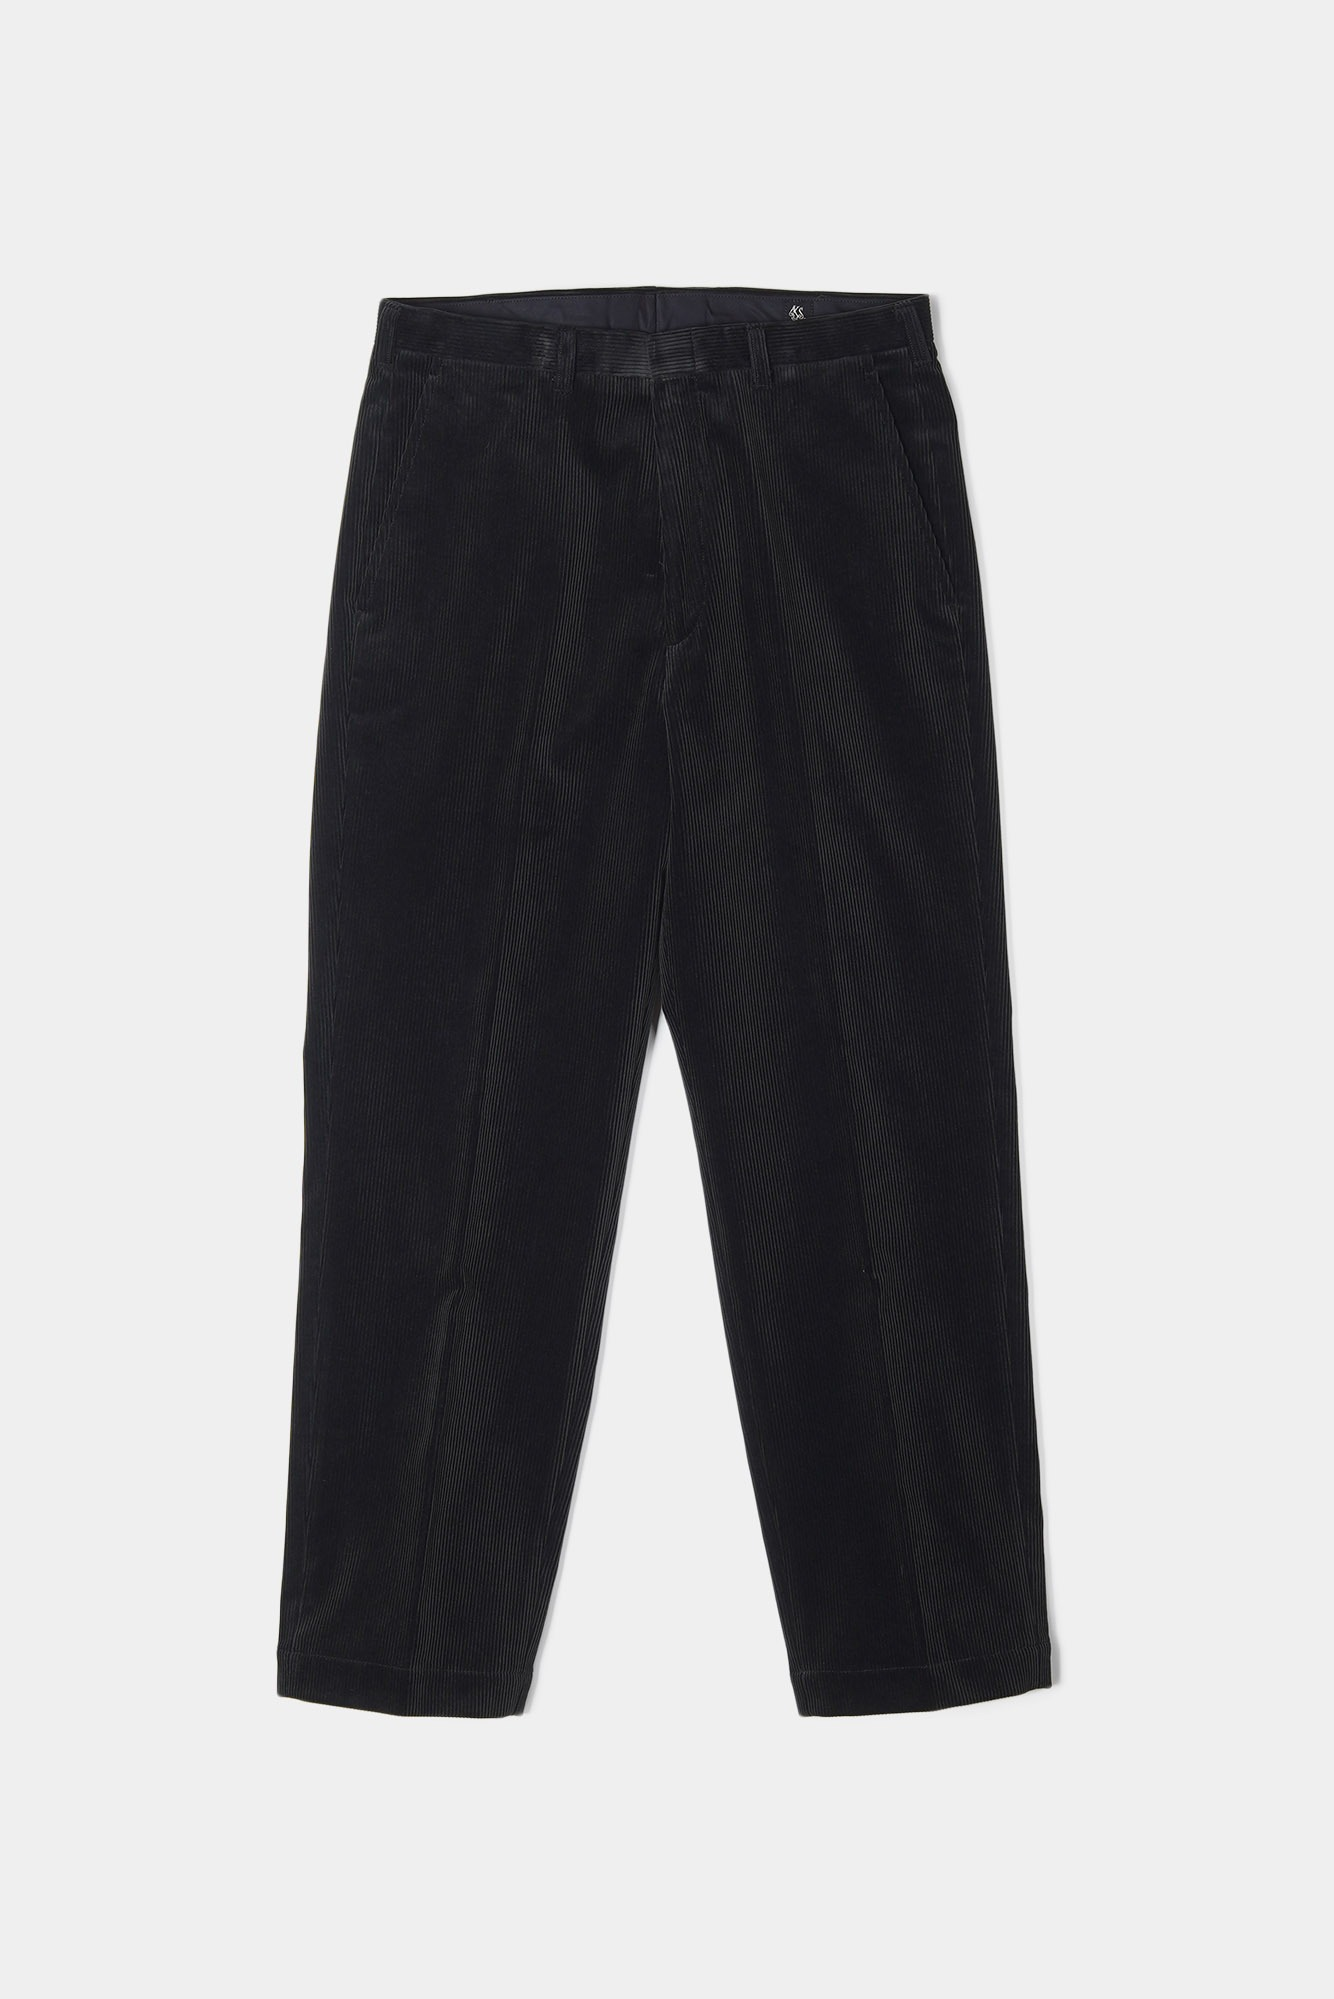 "KAPTAIN SUNSHINE Corduroy Trousers ""Black"""